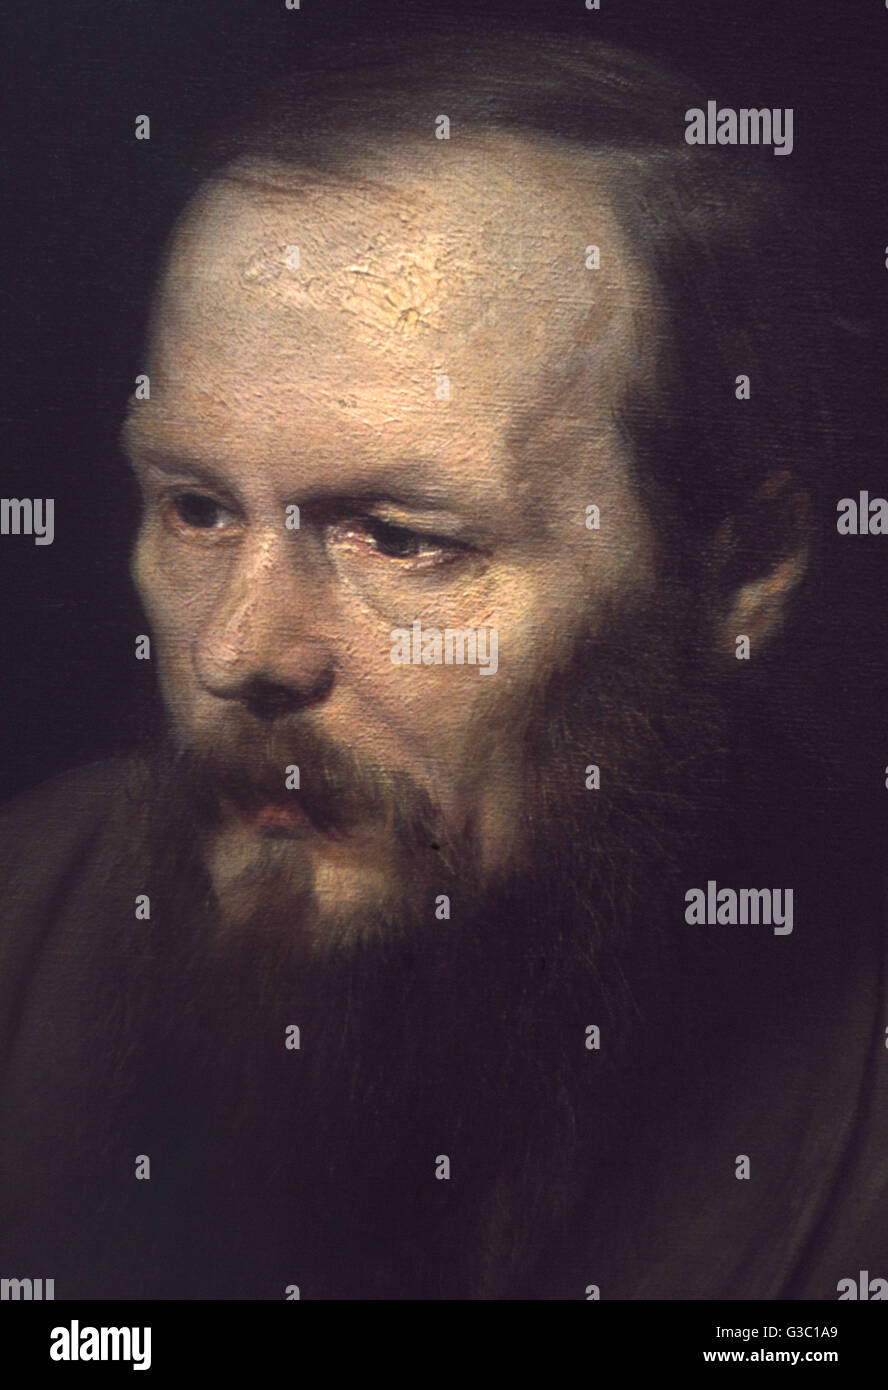 Fyodor Mikhailovich Dostoevsky (1821-1881), Russian writer and philosopher, seen here in a detail from an oil on - Stock Image